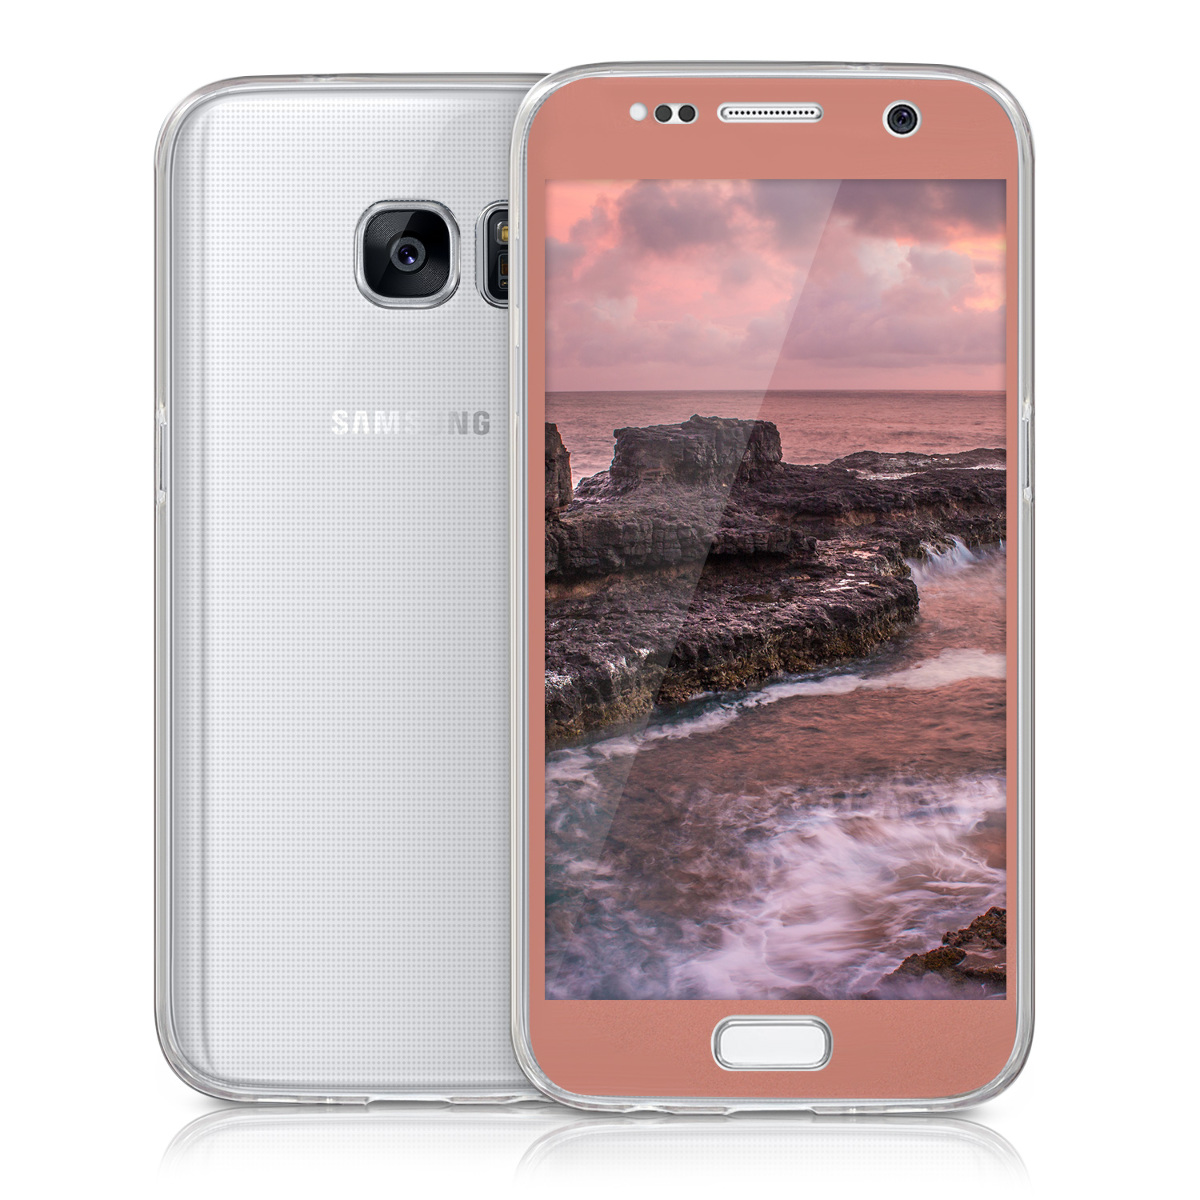 ETUI-FULL-BODY-POUR-SAMSUNG-GALAXY-S7-COVER-PROTECTEUR-TPU-SILICONE